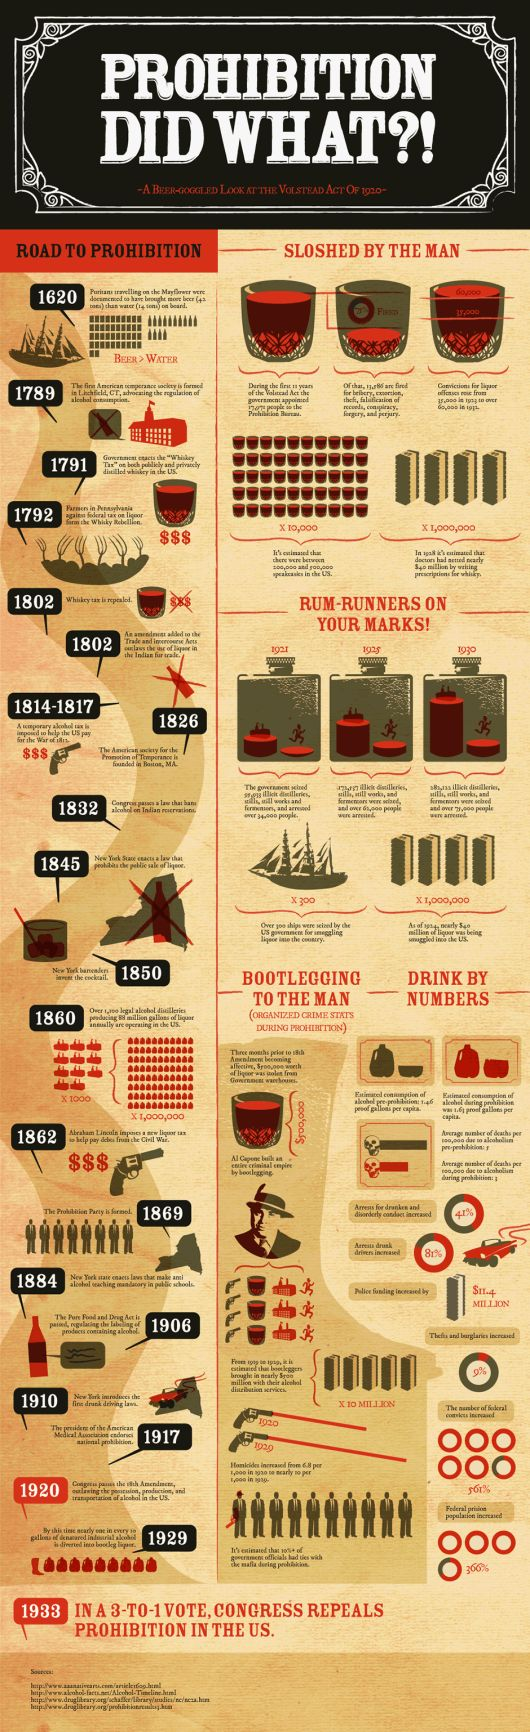 Prohibition Did What?! Great graphic on the era in the 1920s.